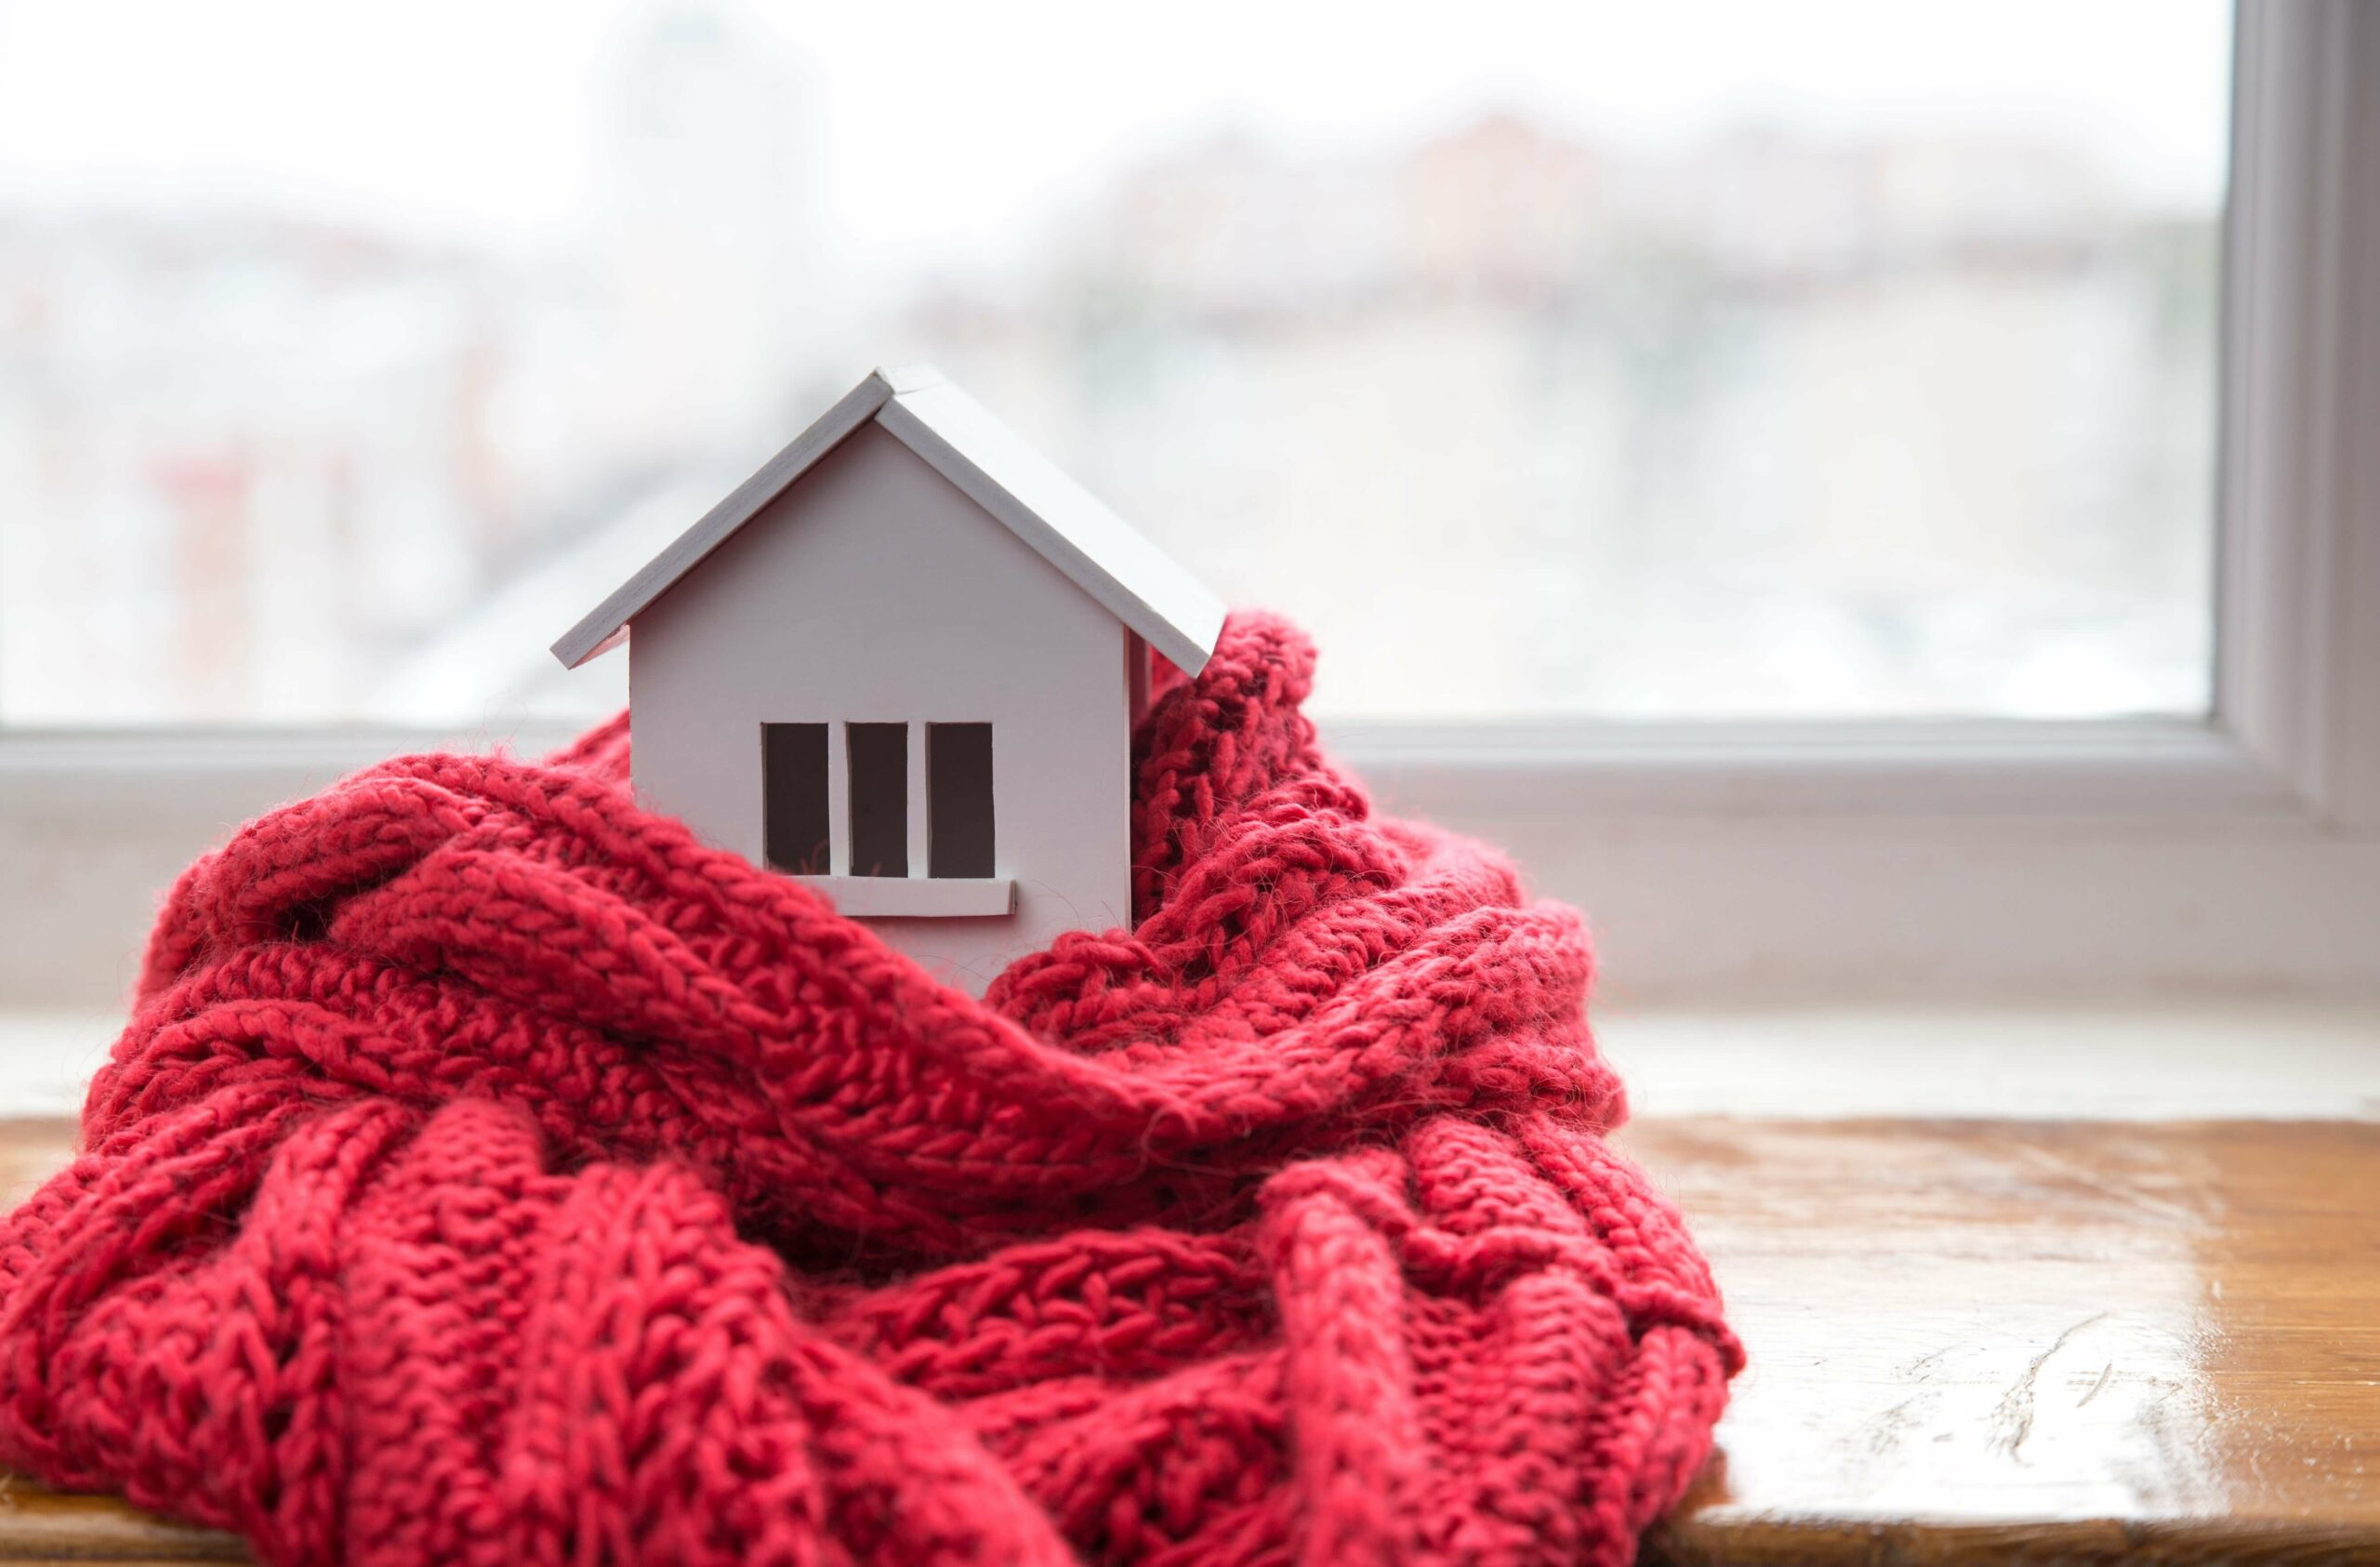 Warm red house toy